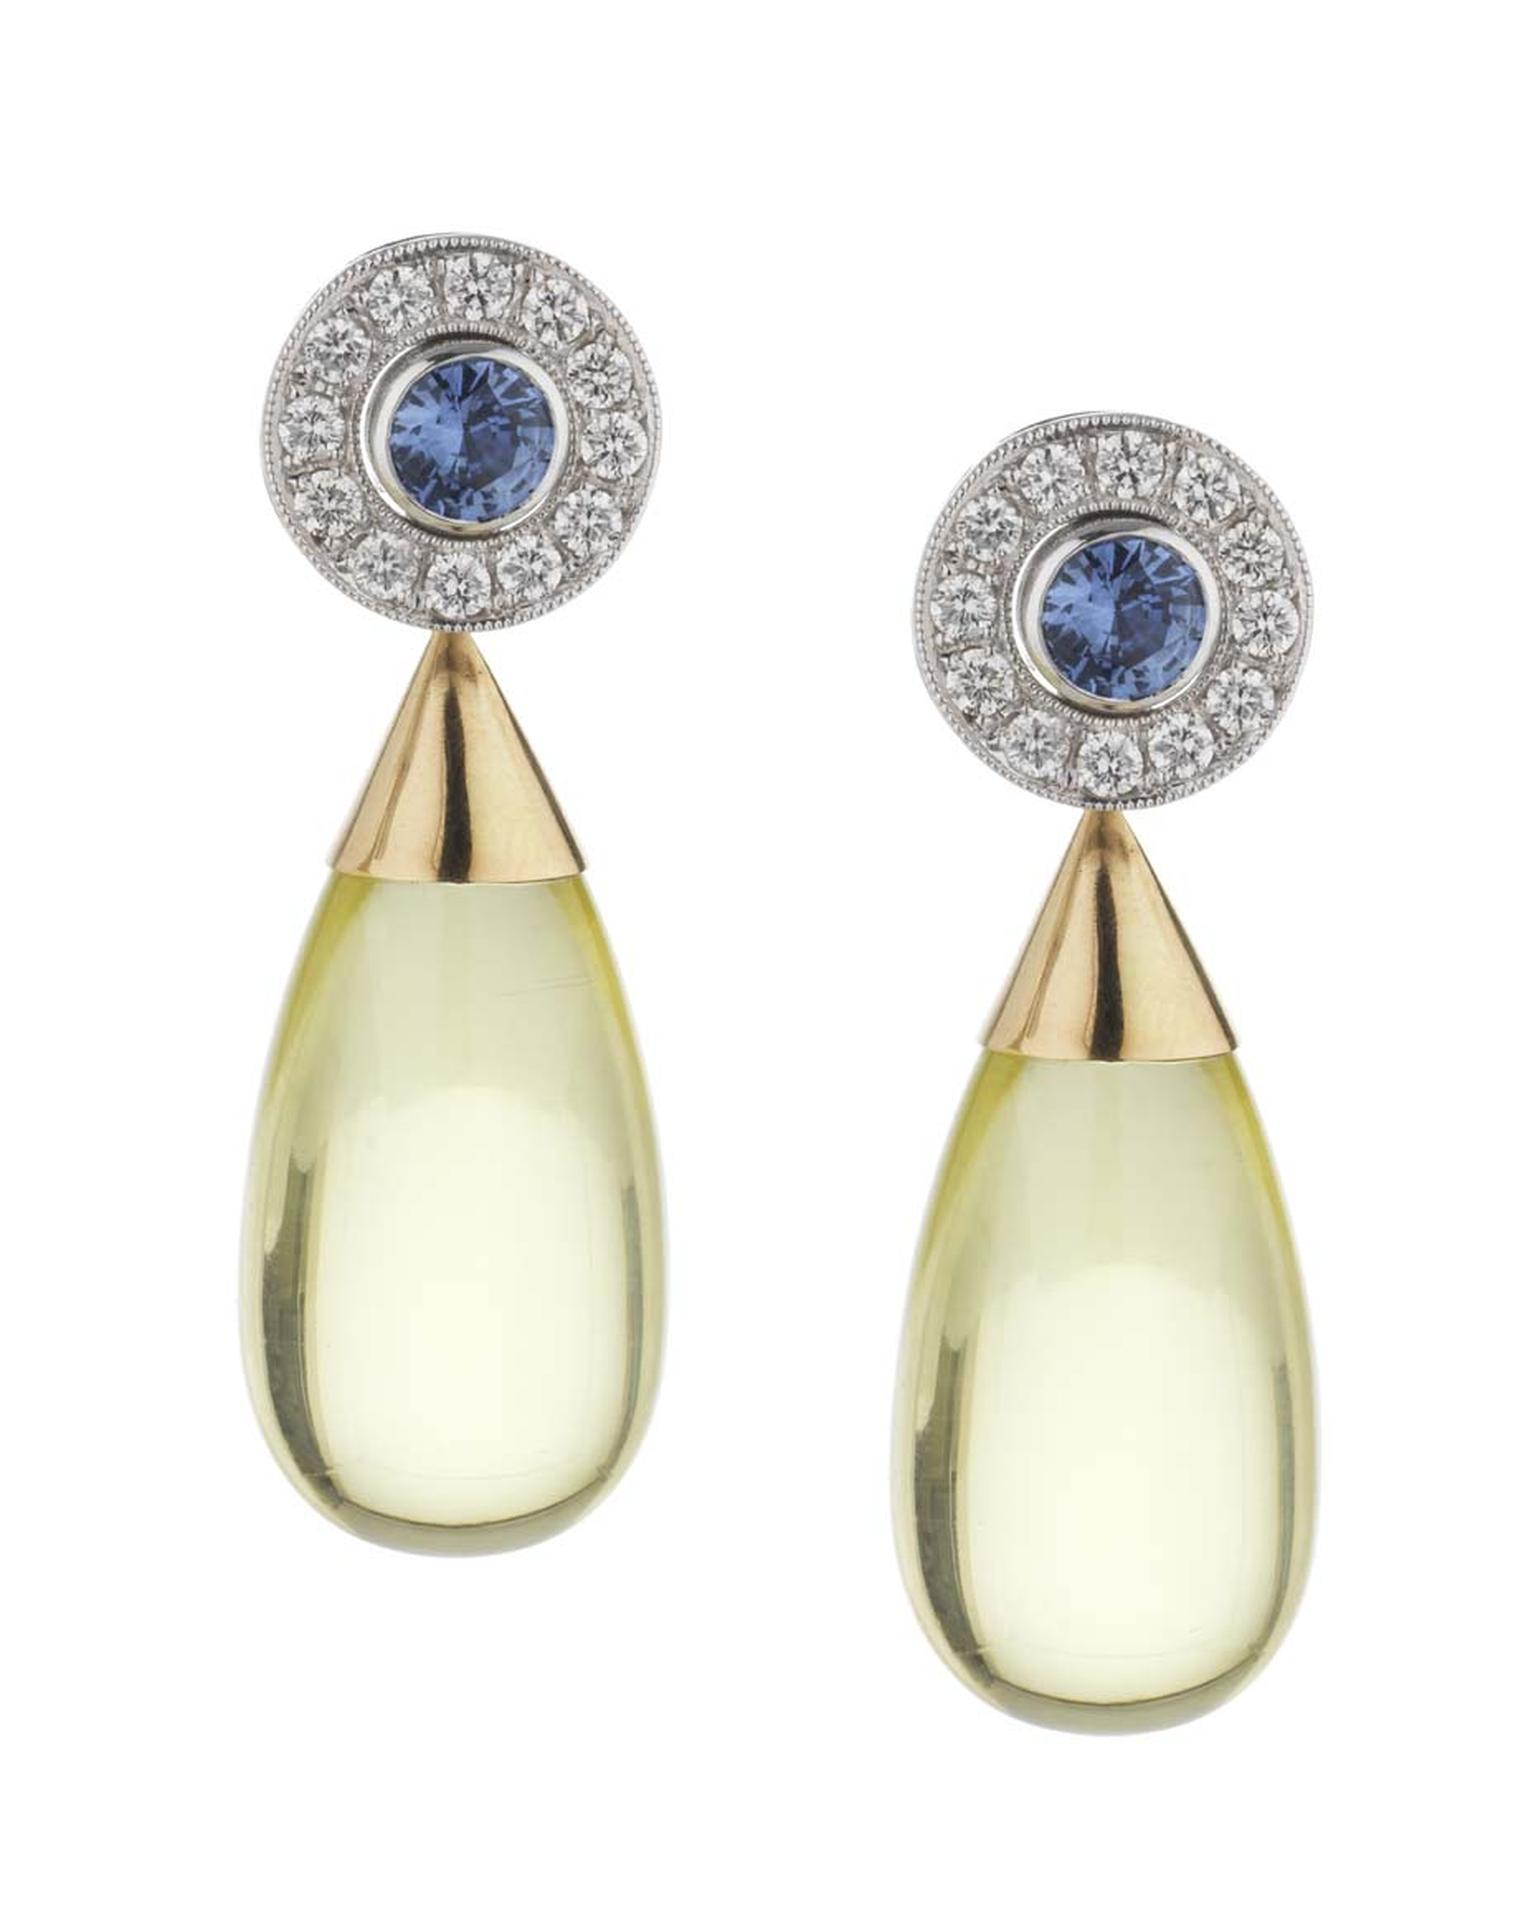 Holts London interchangeable Regent earrings with sapphire stud centres surrounded by diamonds and lemon quartz drops (sapphire and diamond studs £4,495; lemon quartz drops £650).